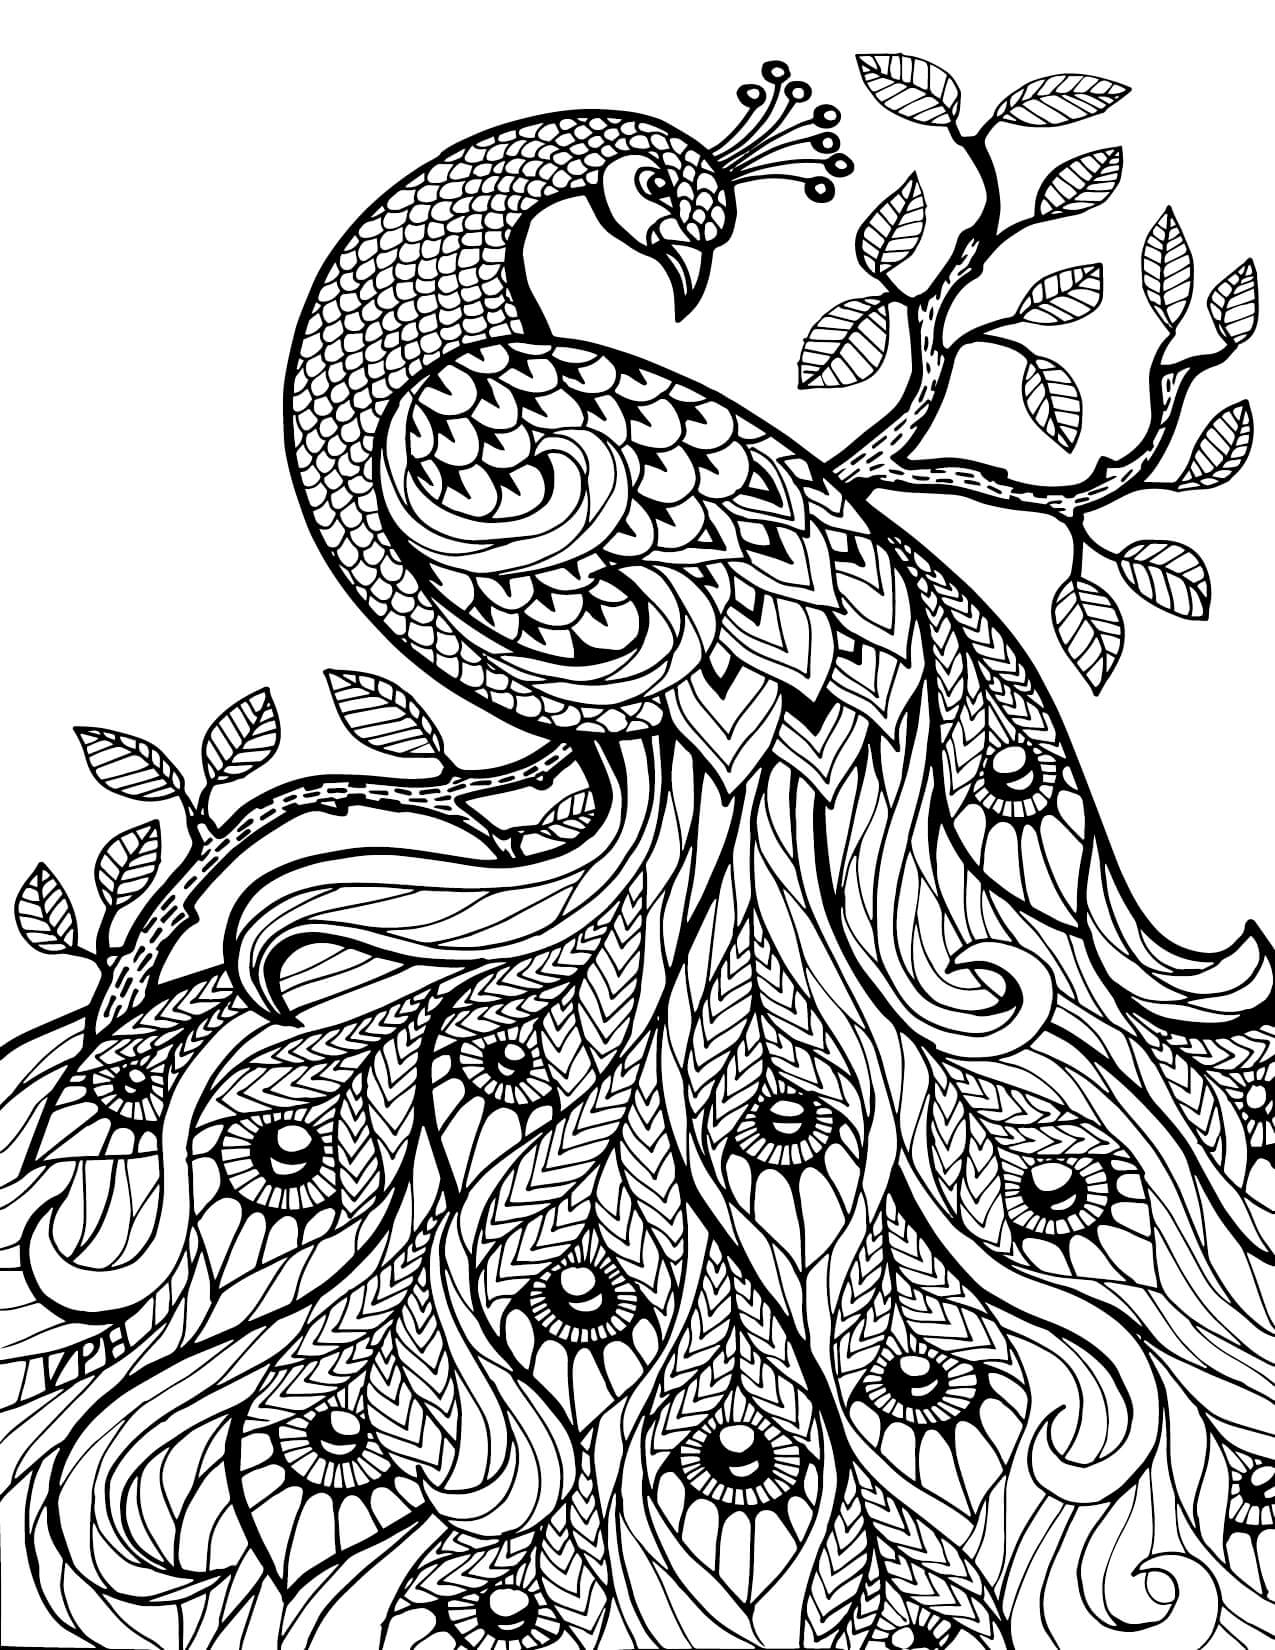 difficult coloring pages for teenagers coloring pages for adults difficult animals 7 coloring coloring for teenagers difficult pages